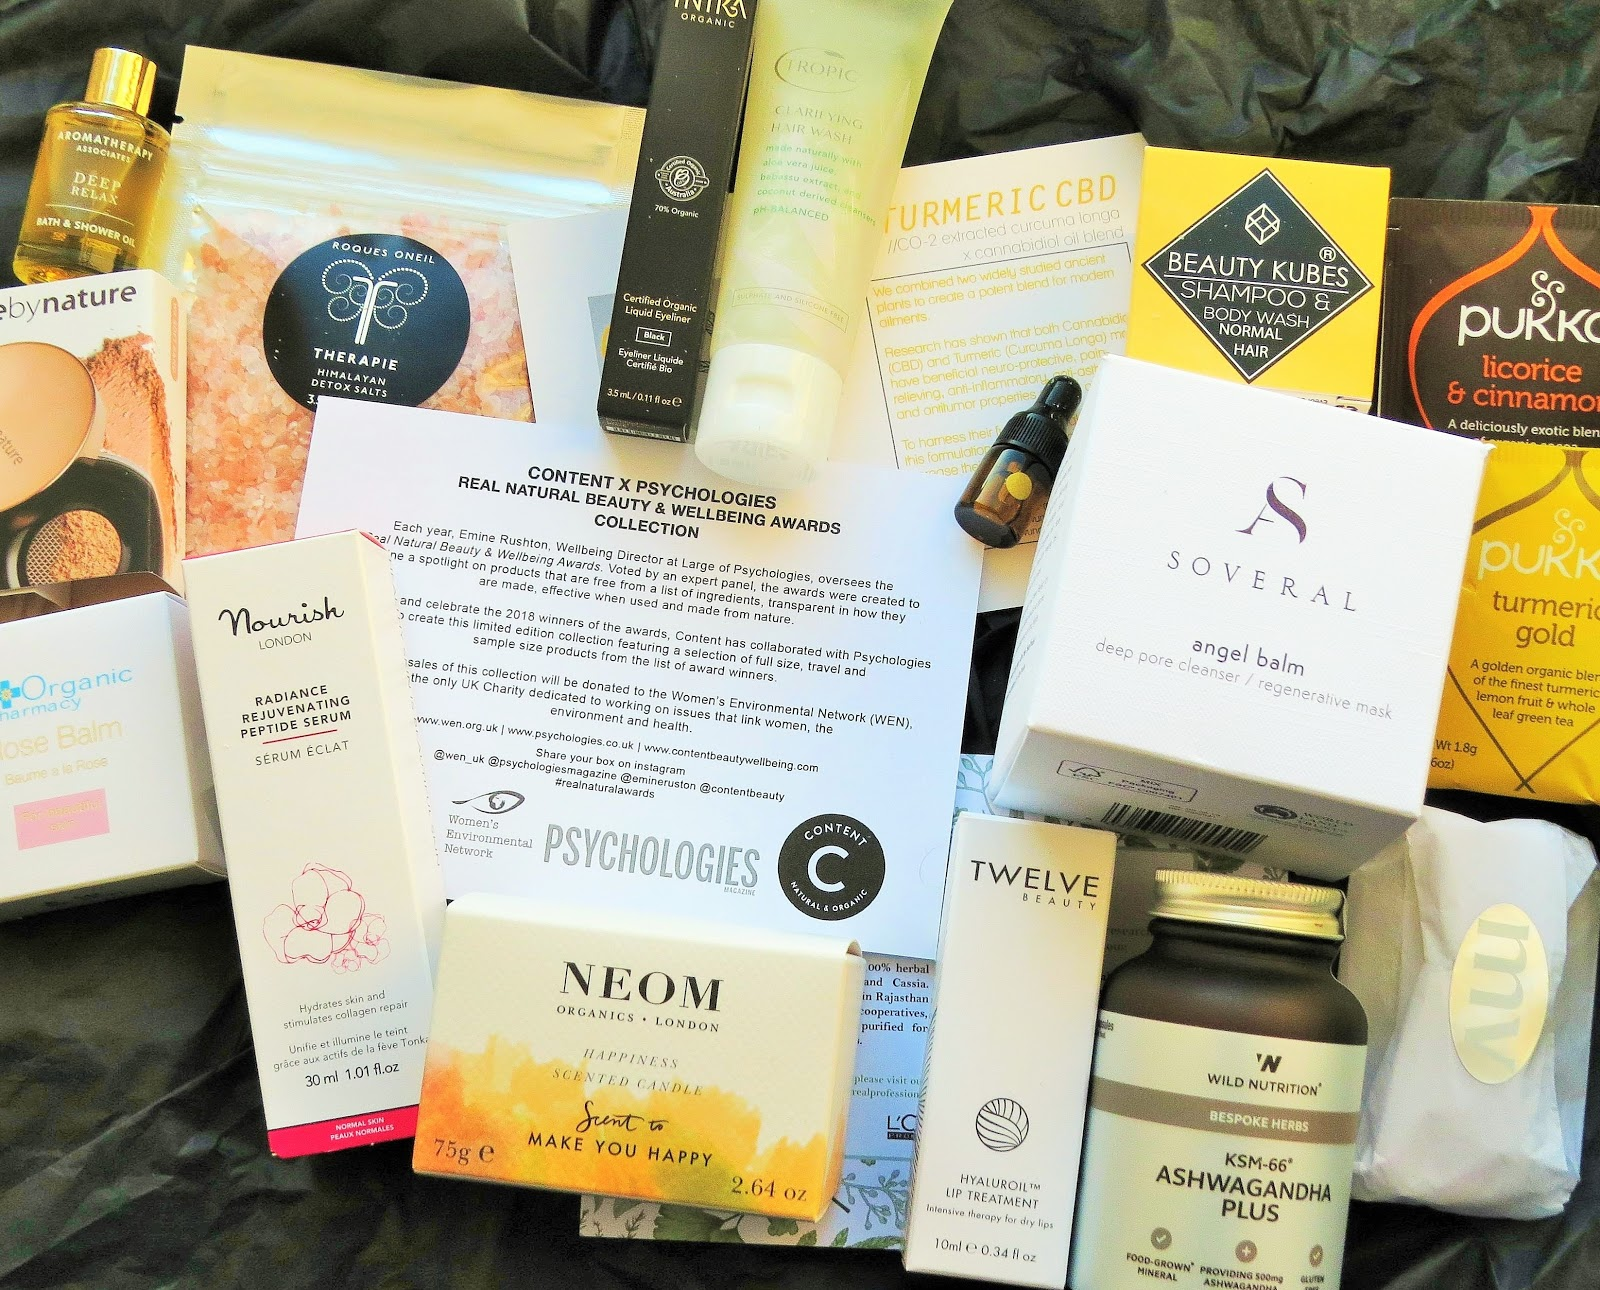 Content Beauty x Psychologies Real Beauty & Wellbeing Awards Box A